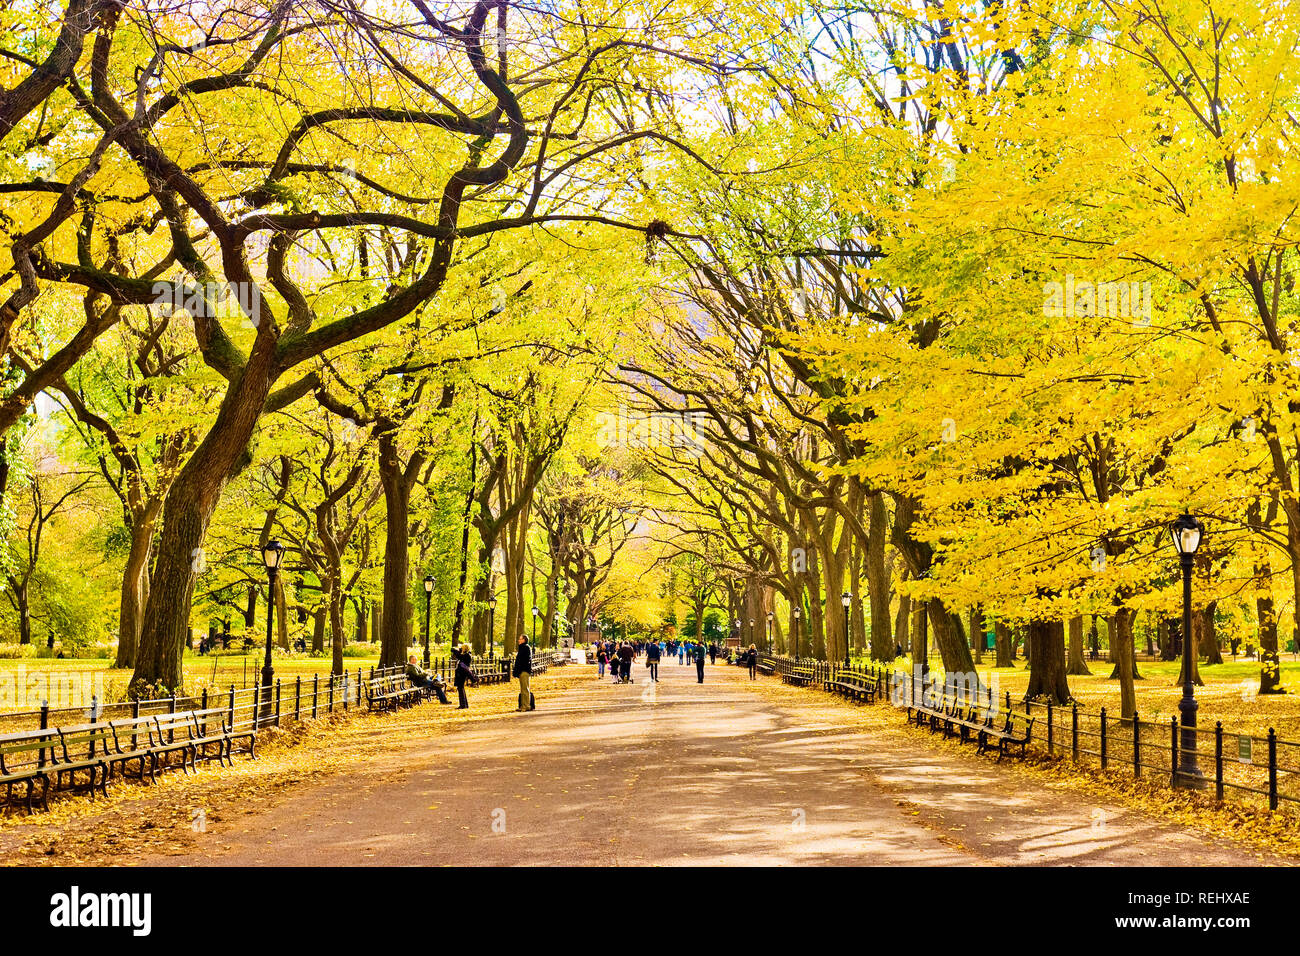 The Mall Central Park Autumn New York City - Stock Image